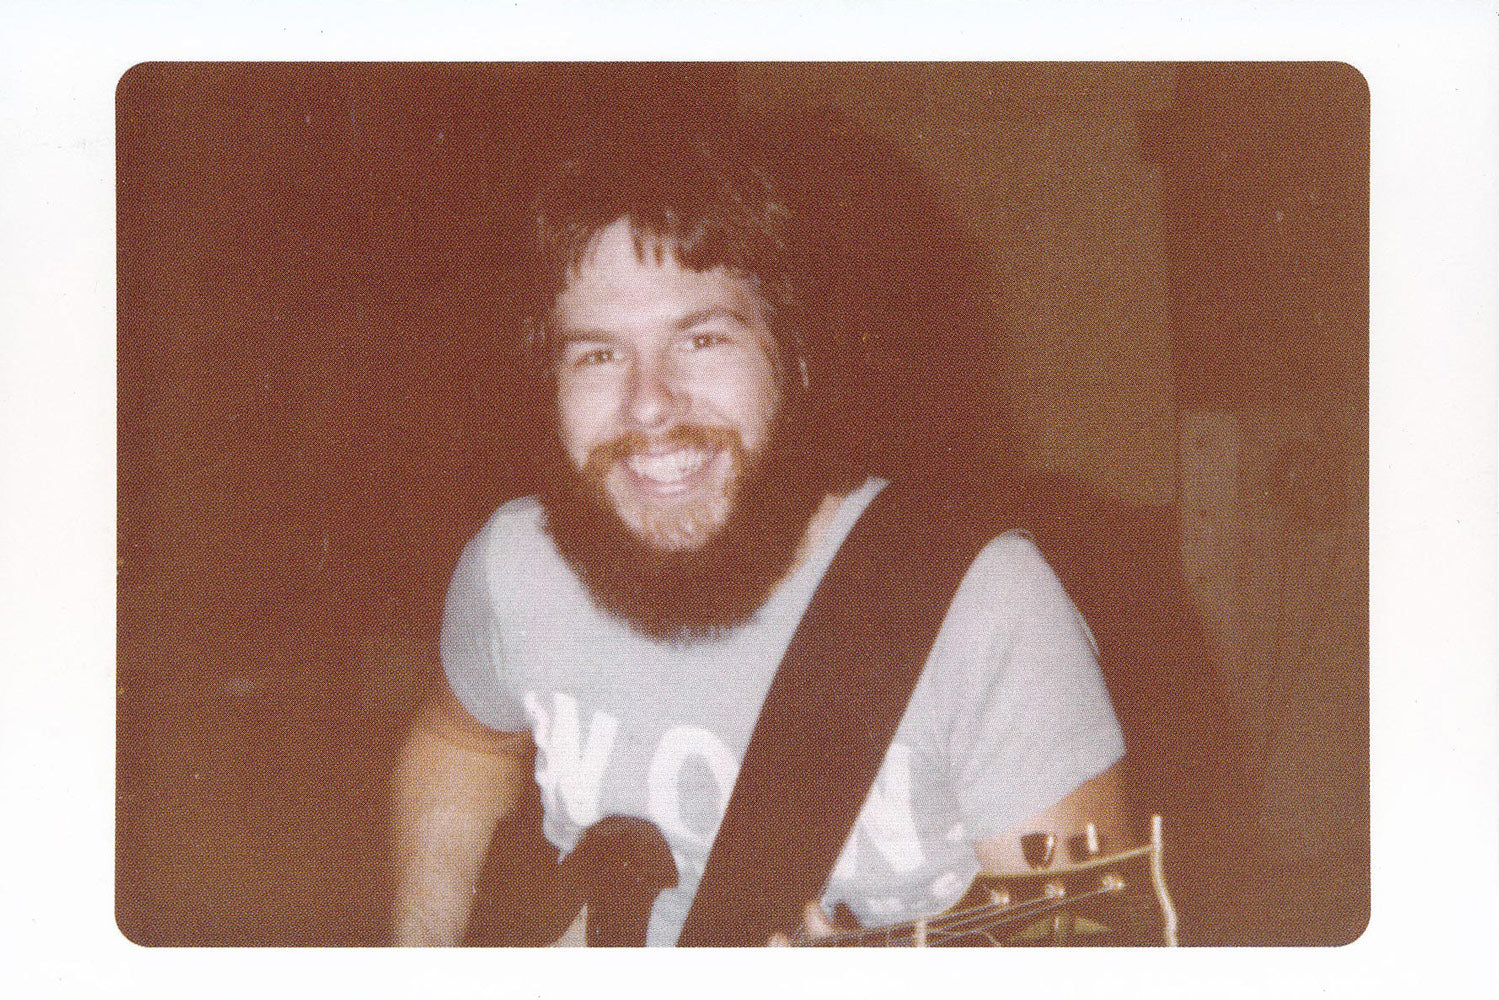 Front of postcard liner note for AGS-7001. Photograph of Mike Lundy at The Rhythm Of Life recording sessions in 1980.